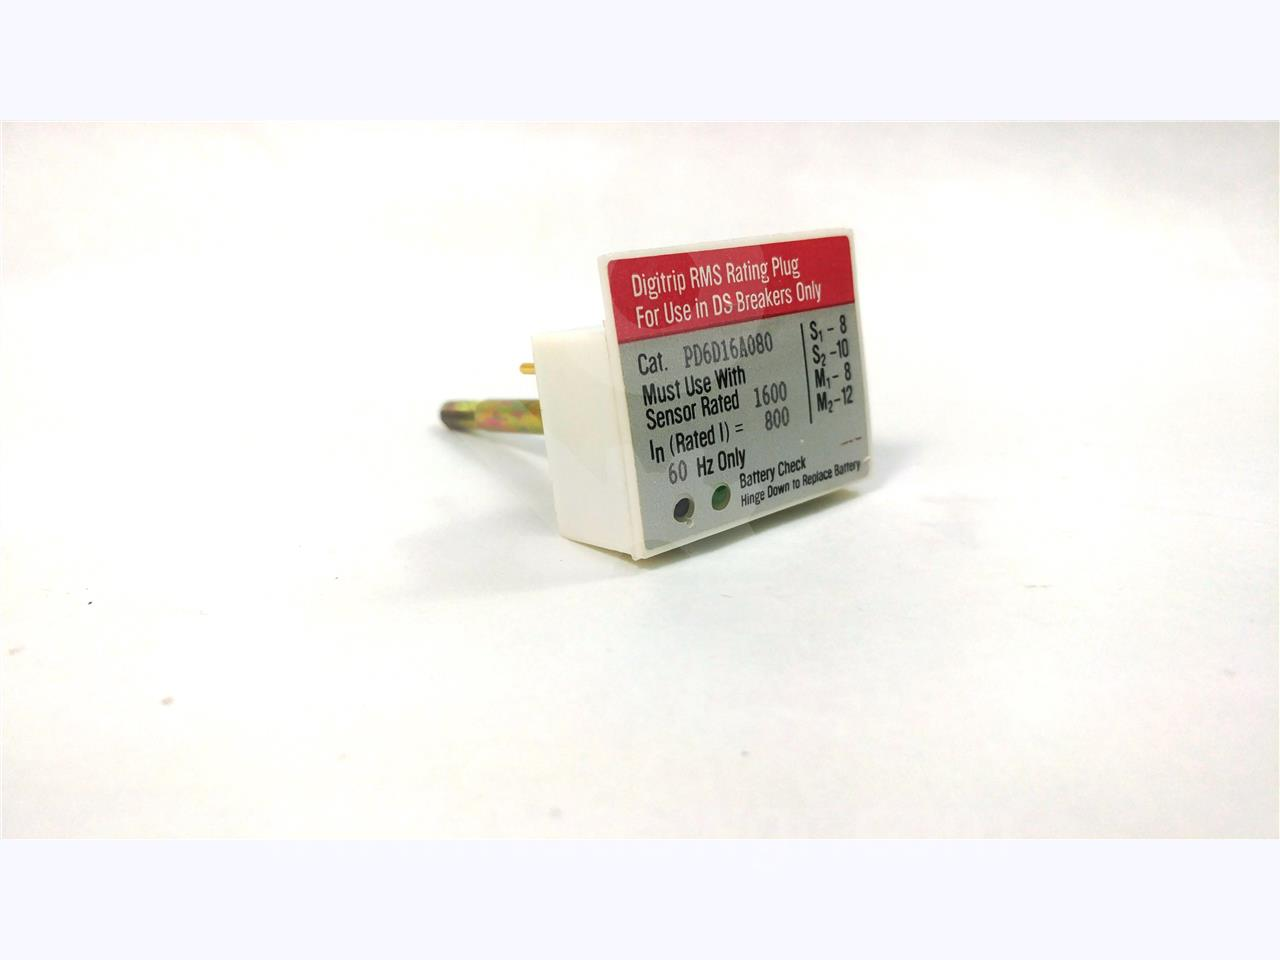 800A WH RATING PLUG 1600A CT